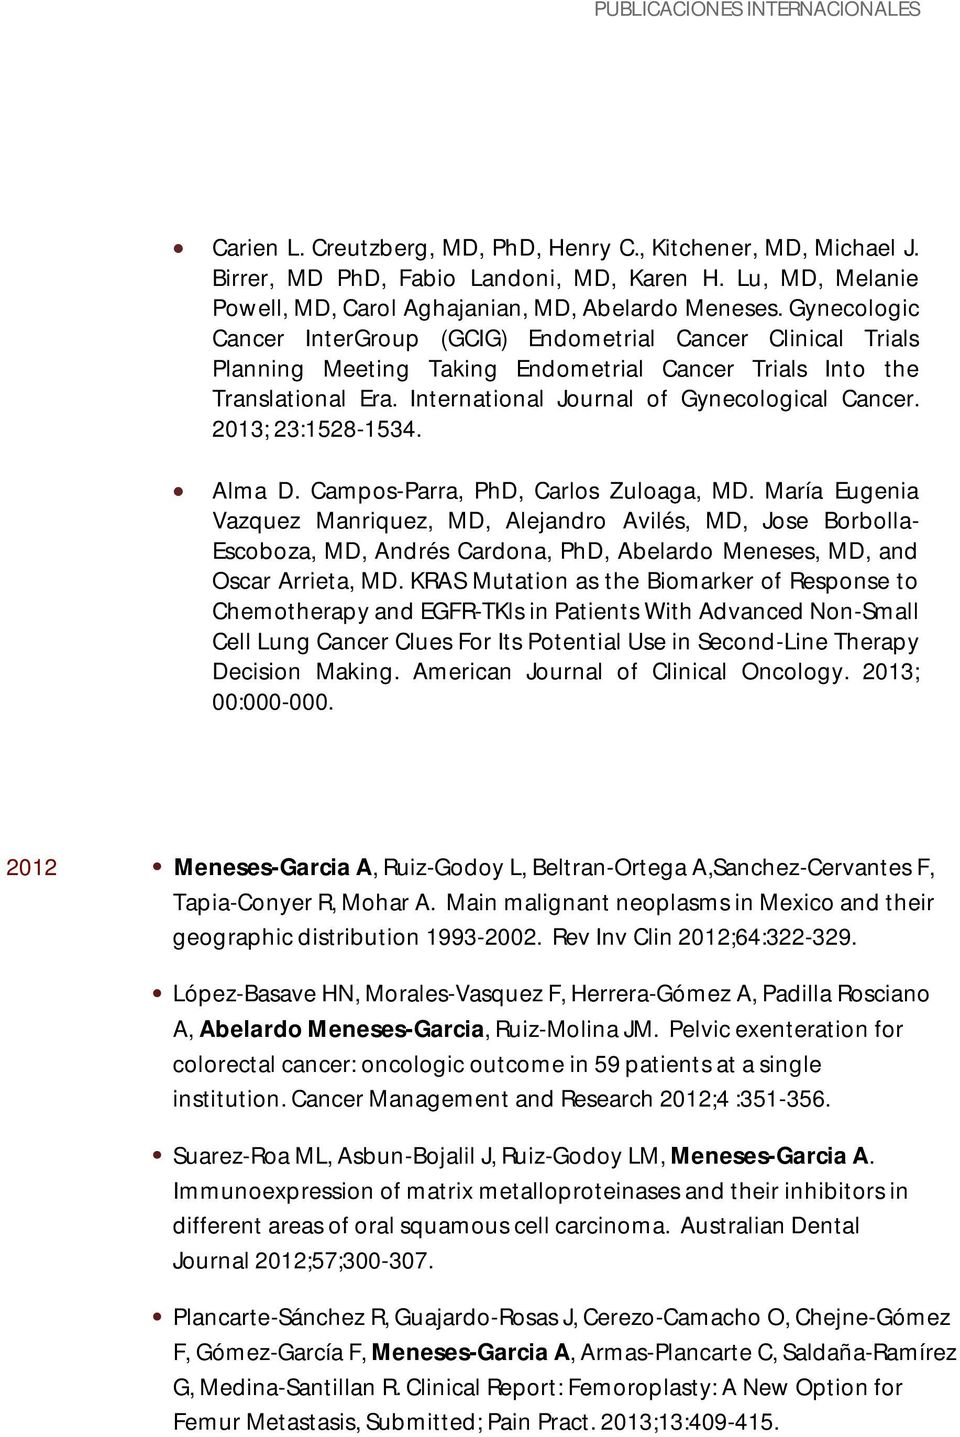 Gynecologic Cancer InterGroup (GCIG) Endometrial Cancer Clinical Trials Planning Meeting Taking Endometrial Cancer Trials Into the Translational Era. International Journal of Gynecological Cancer.